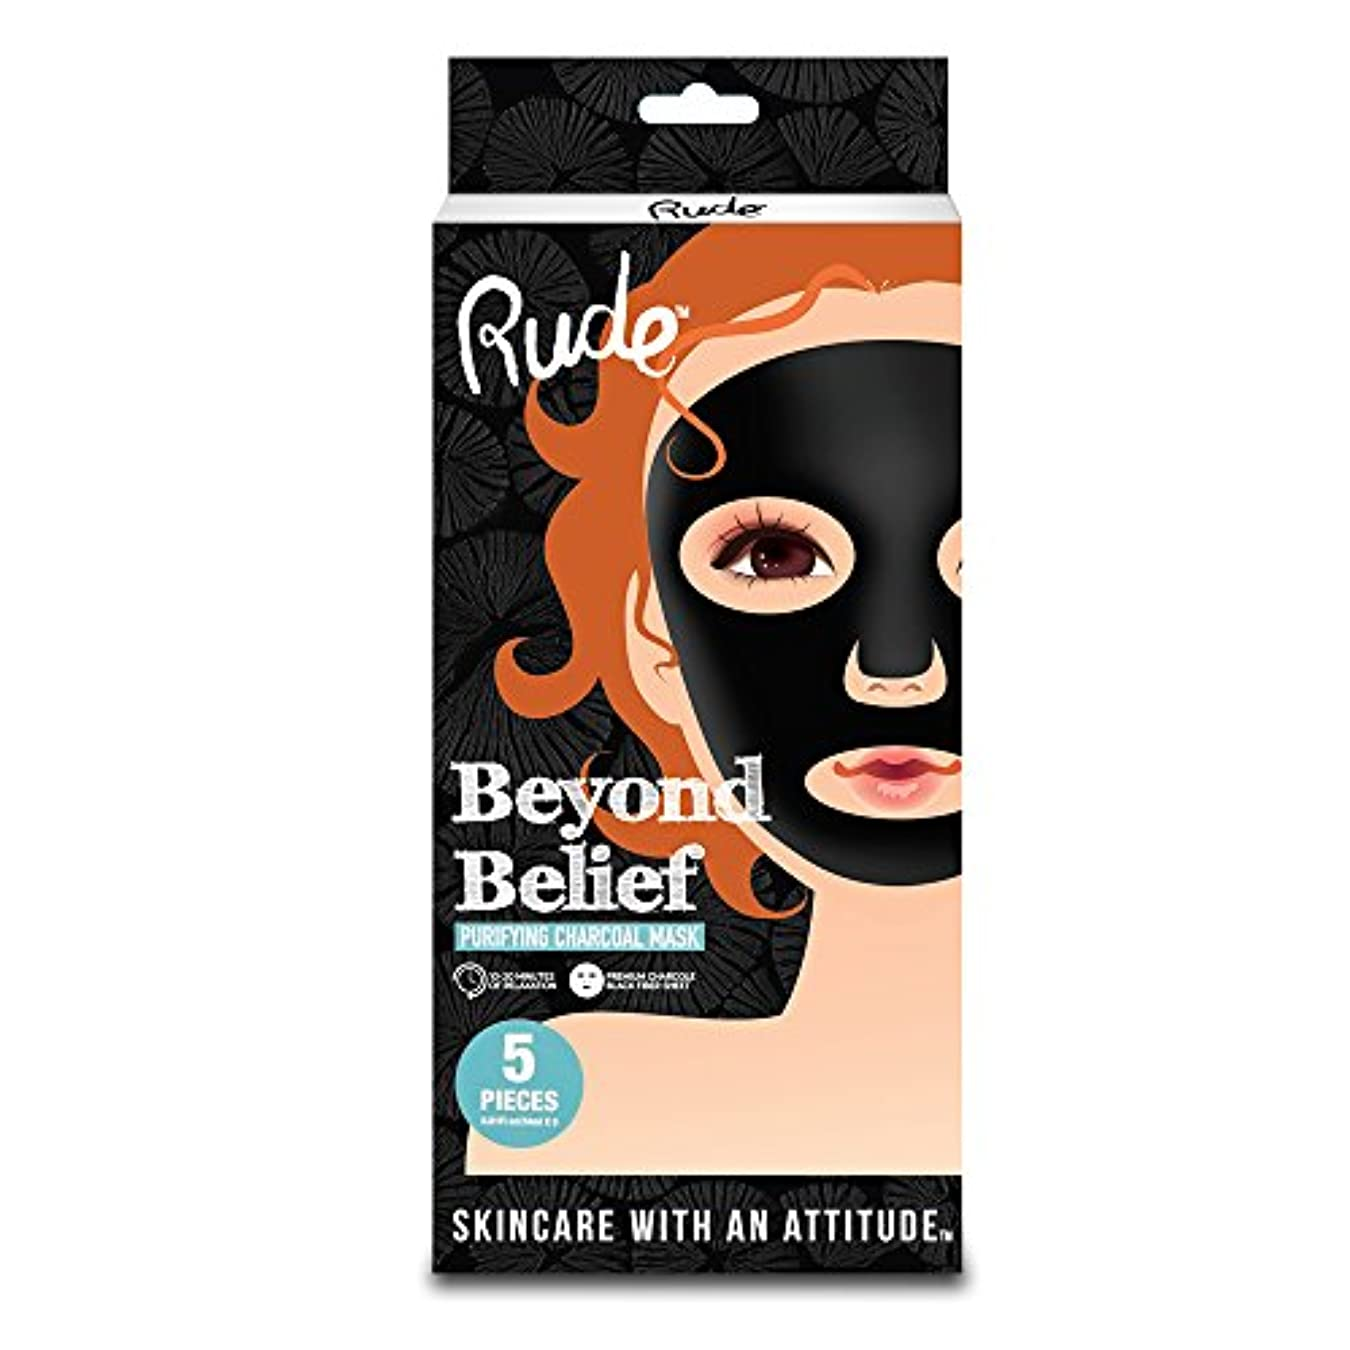 銀自分のキャンバスRUDE Beyond Belief Purifying Charcoal Mask 5 Piece Pack (並行輸入品)